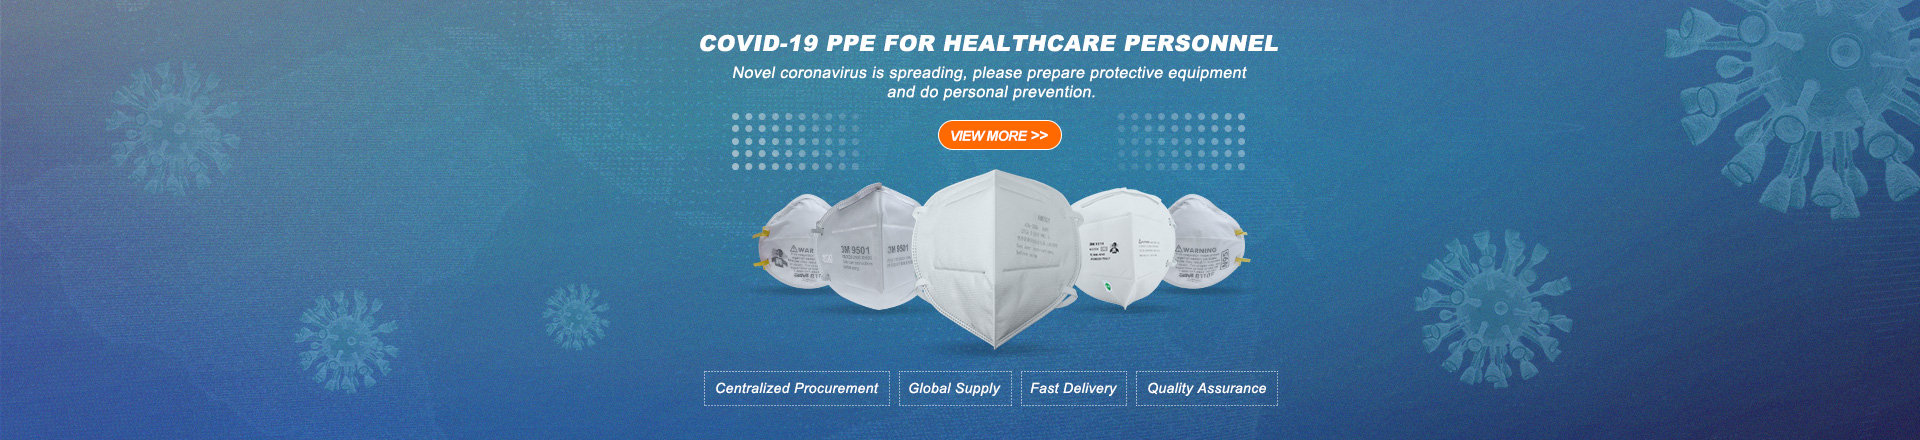 COVID-19 PPE FOR HEALTHCARE PERSONNEL